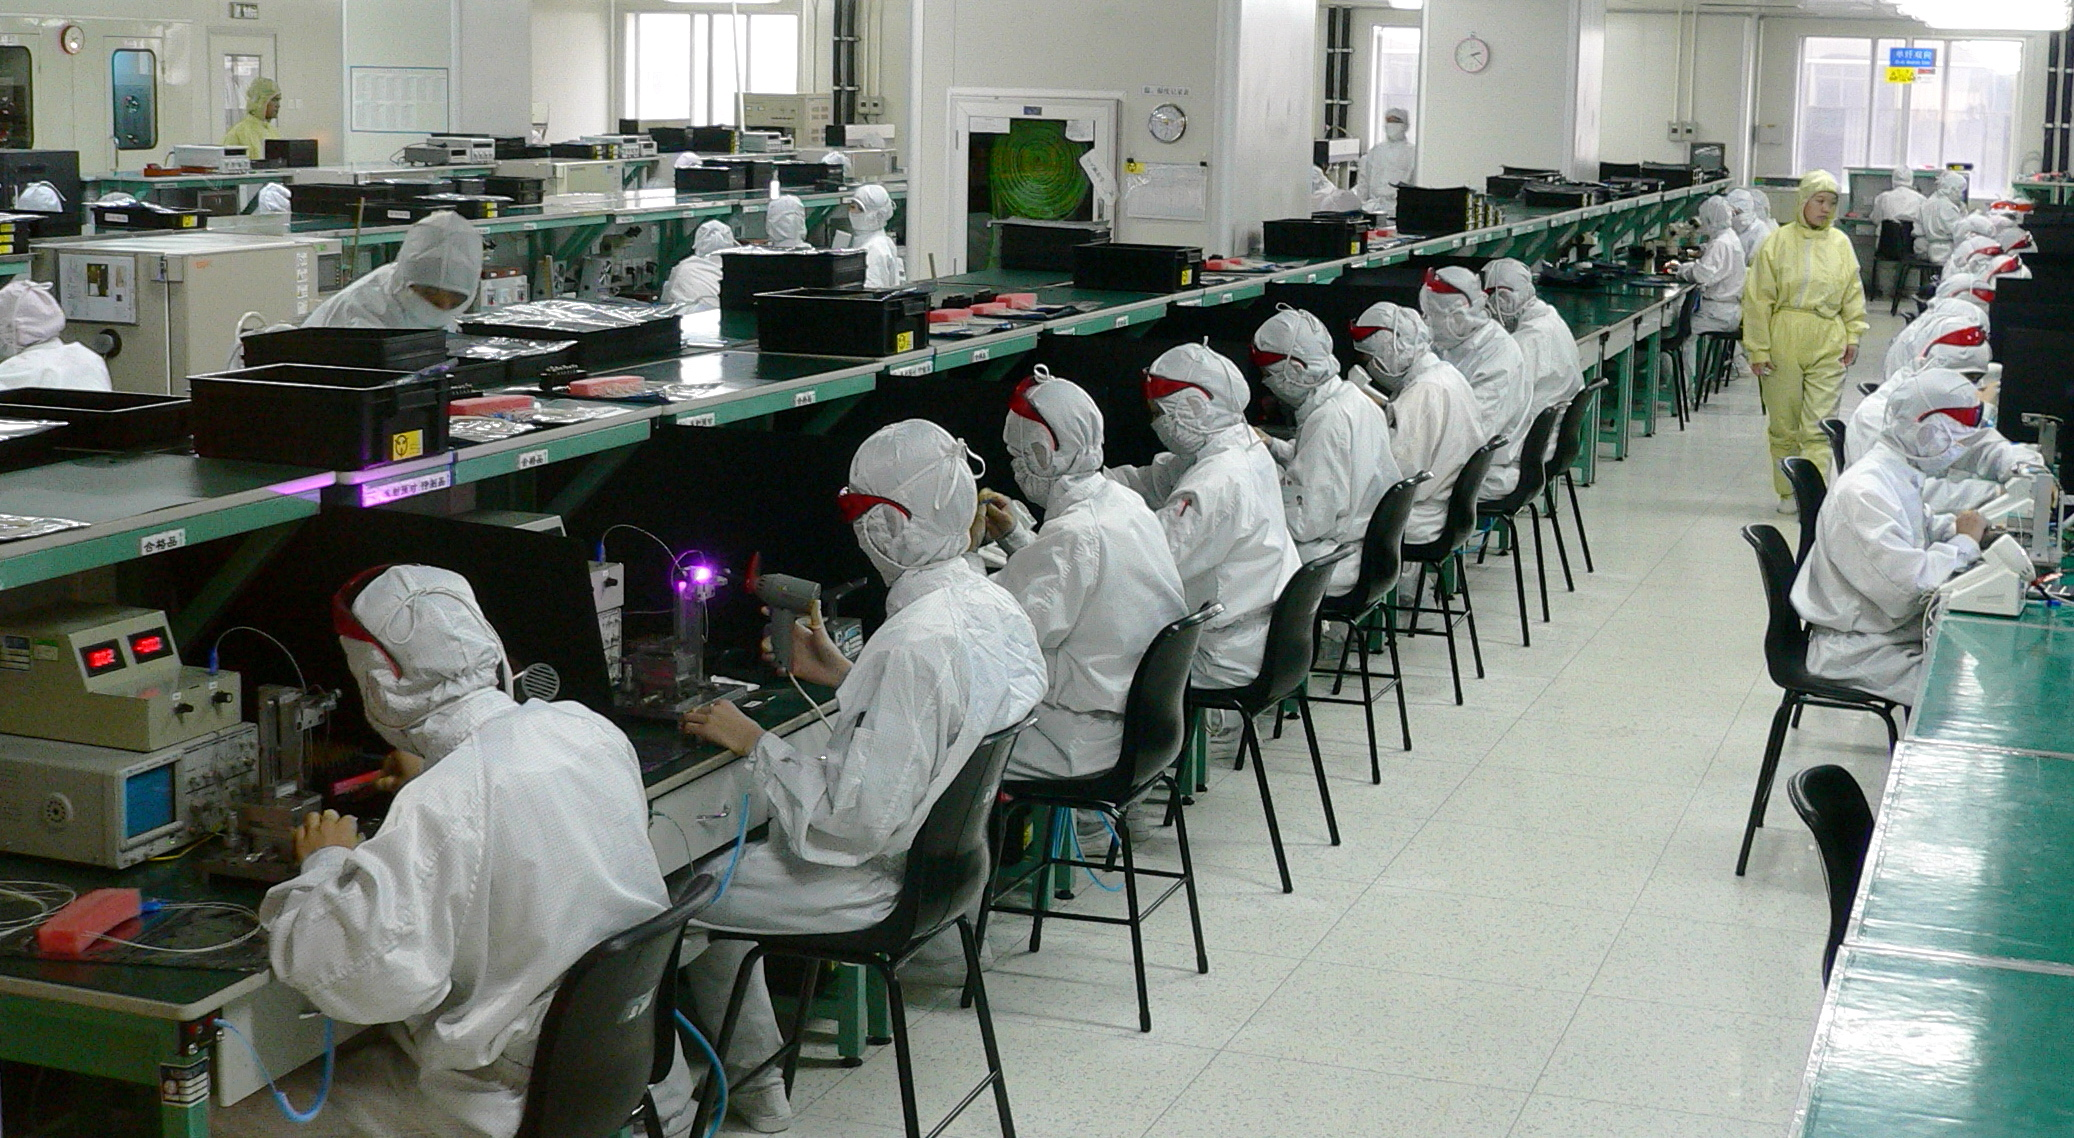 Labor Exploitation at Foxconn China